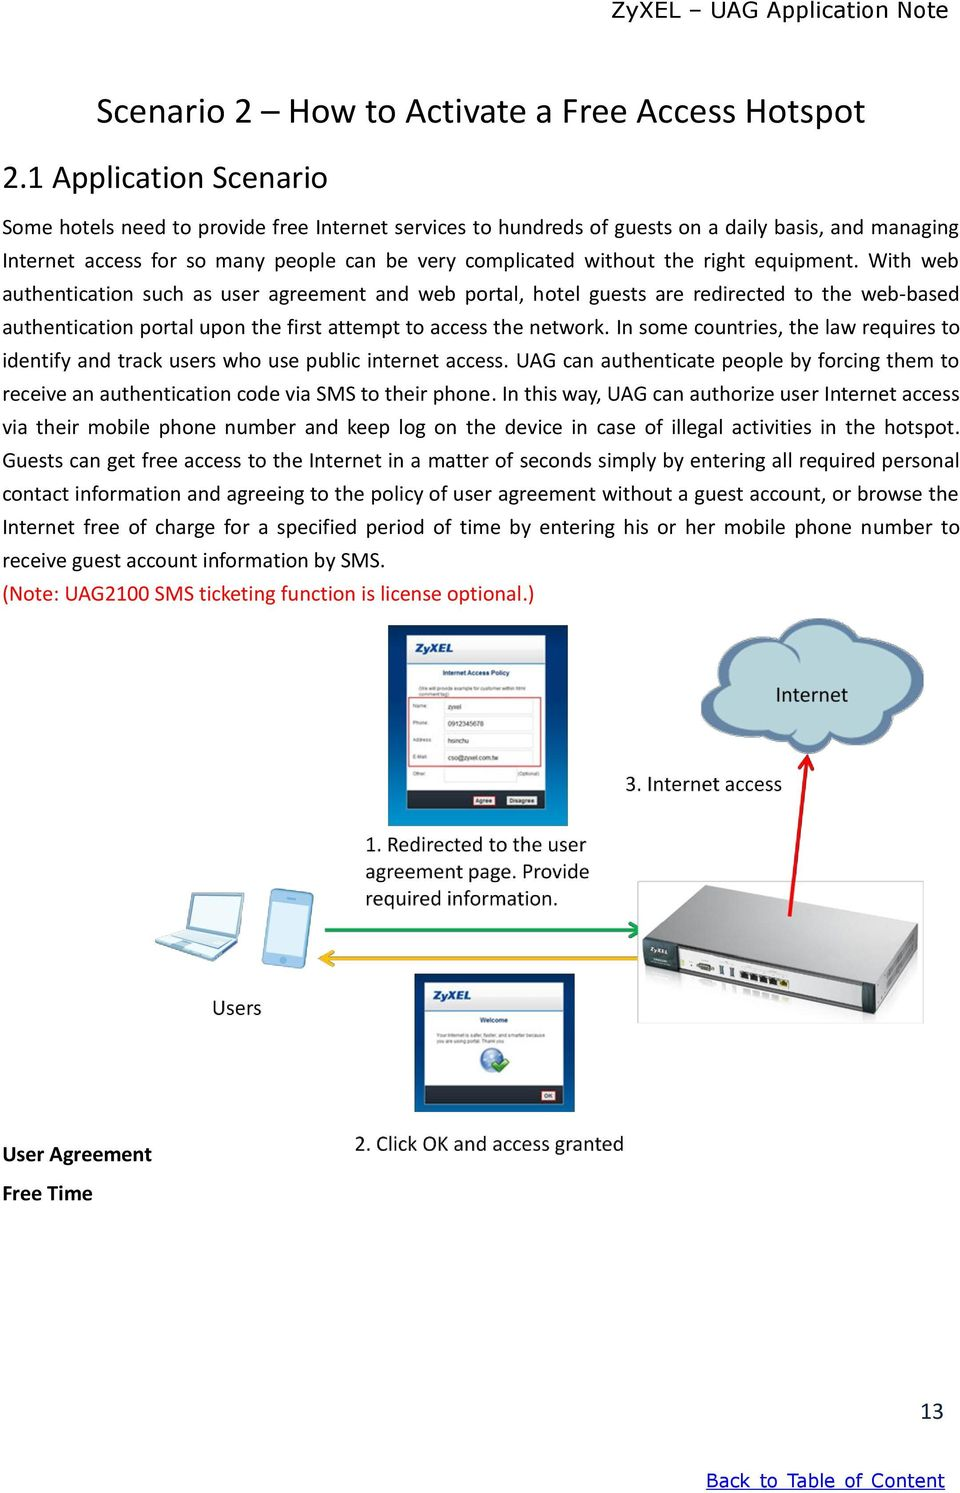 right equipment. With web authentication such as user agreement and web portal, hotel guests are redirected to the web-based authentication portal upon the first attempt to access the network.